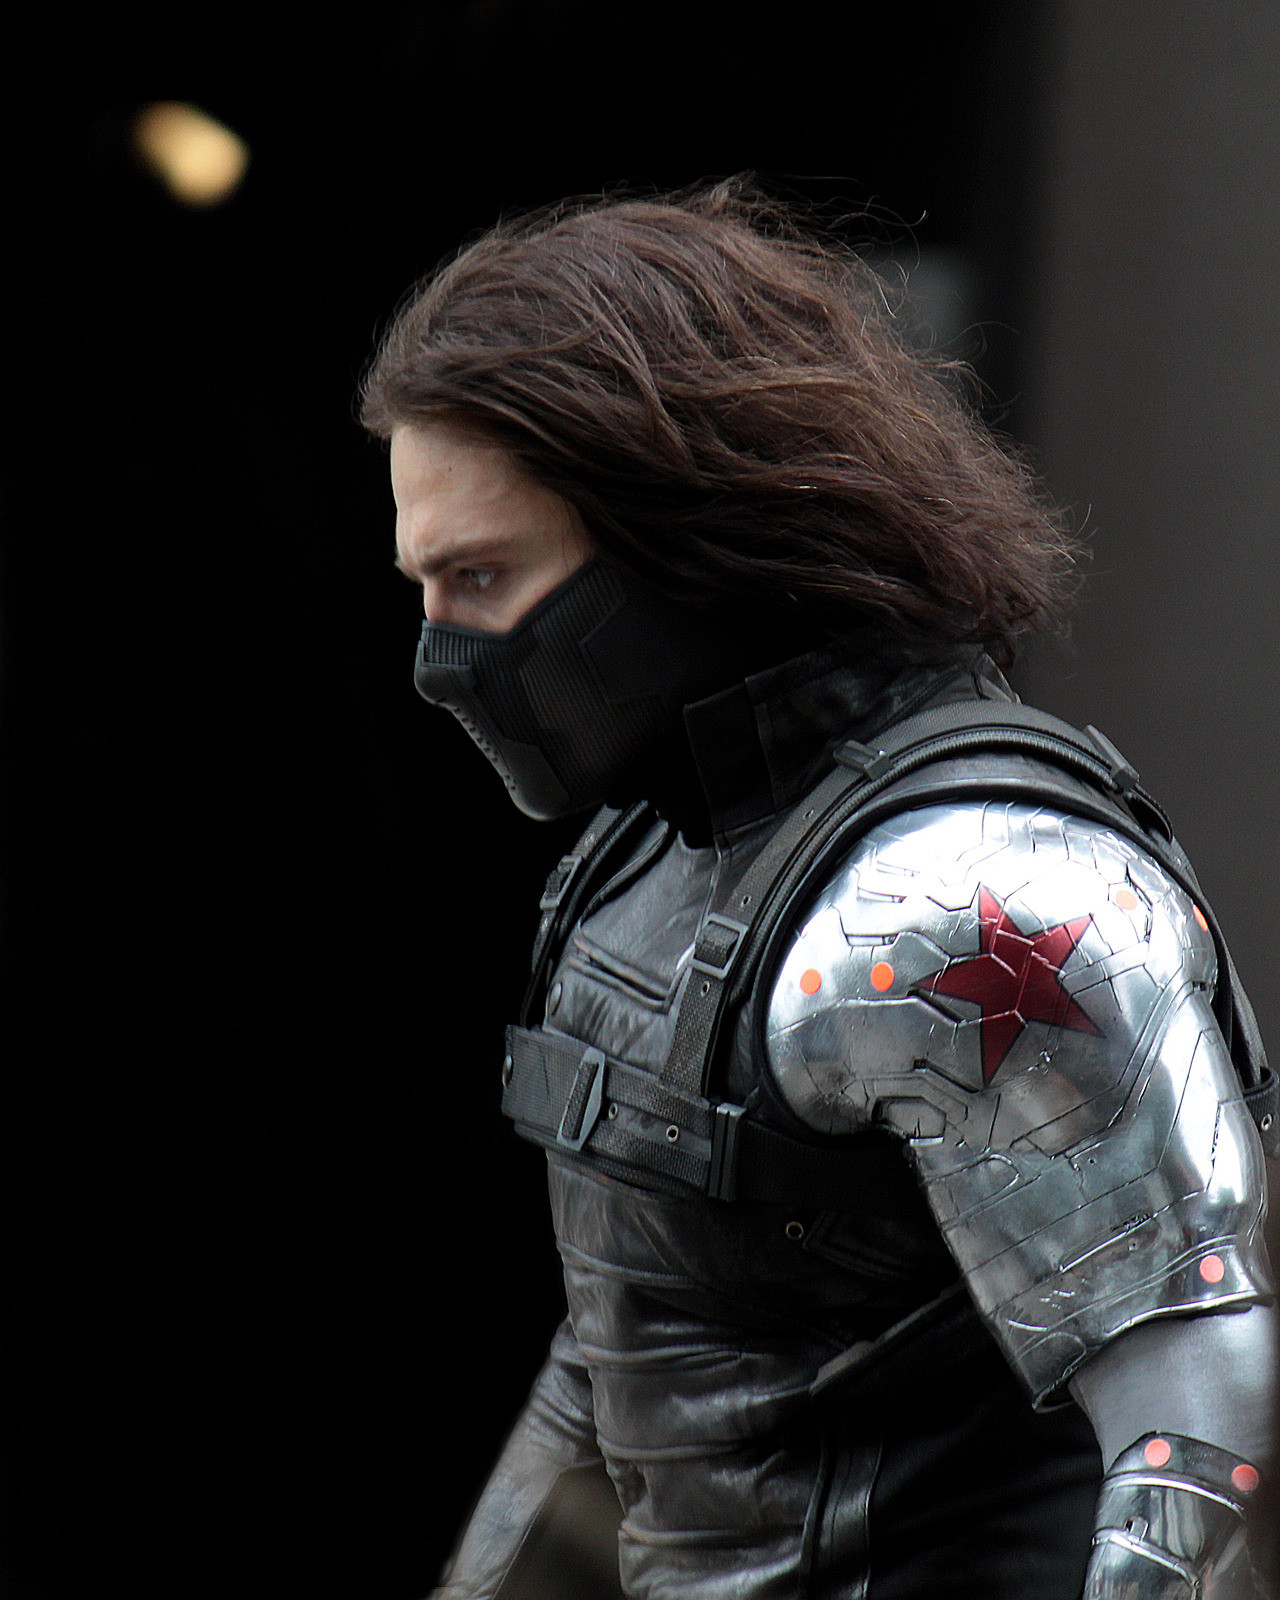 The Winter Soldier is not to be taken lightly. From blurppy.com